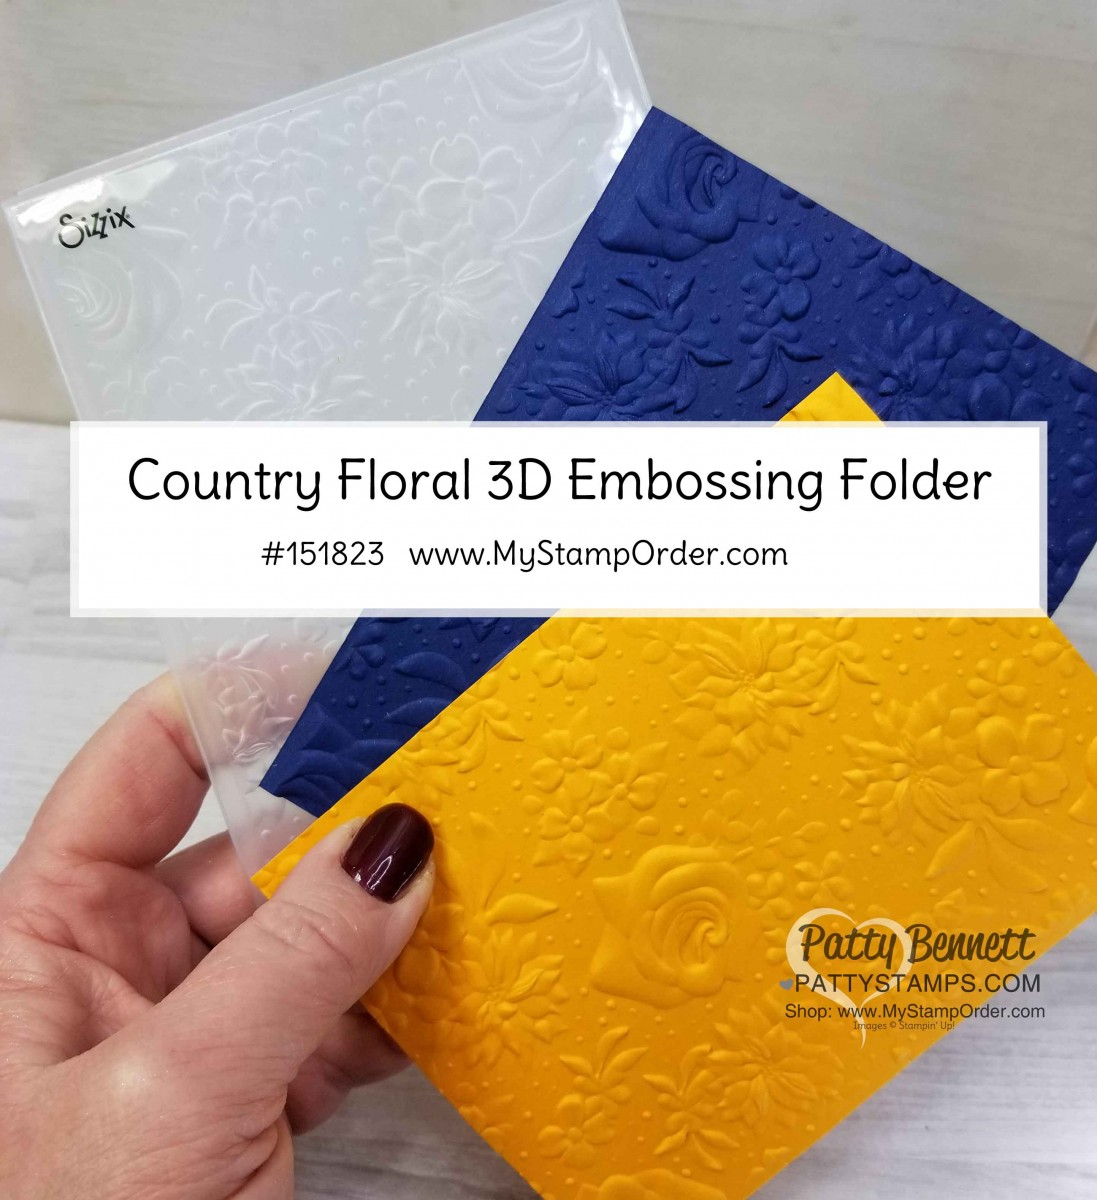 Country Floral Embossing Folder available again!